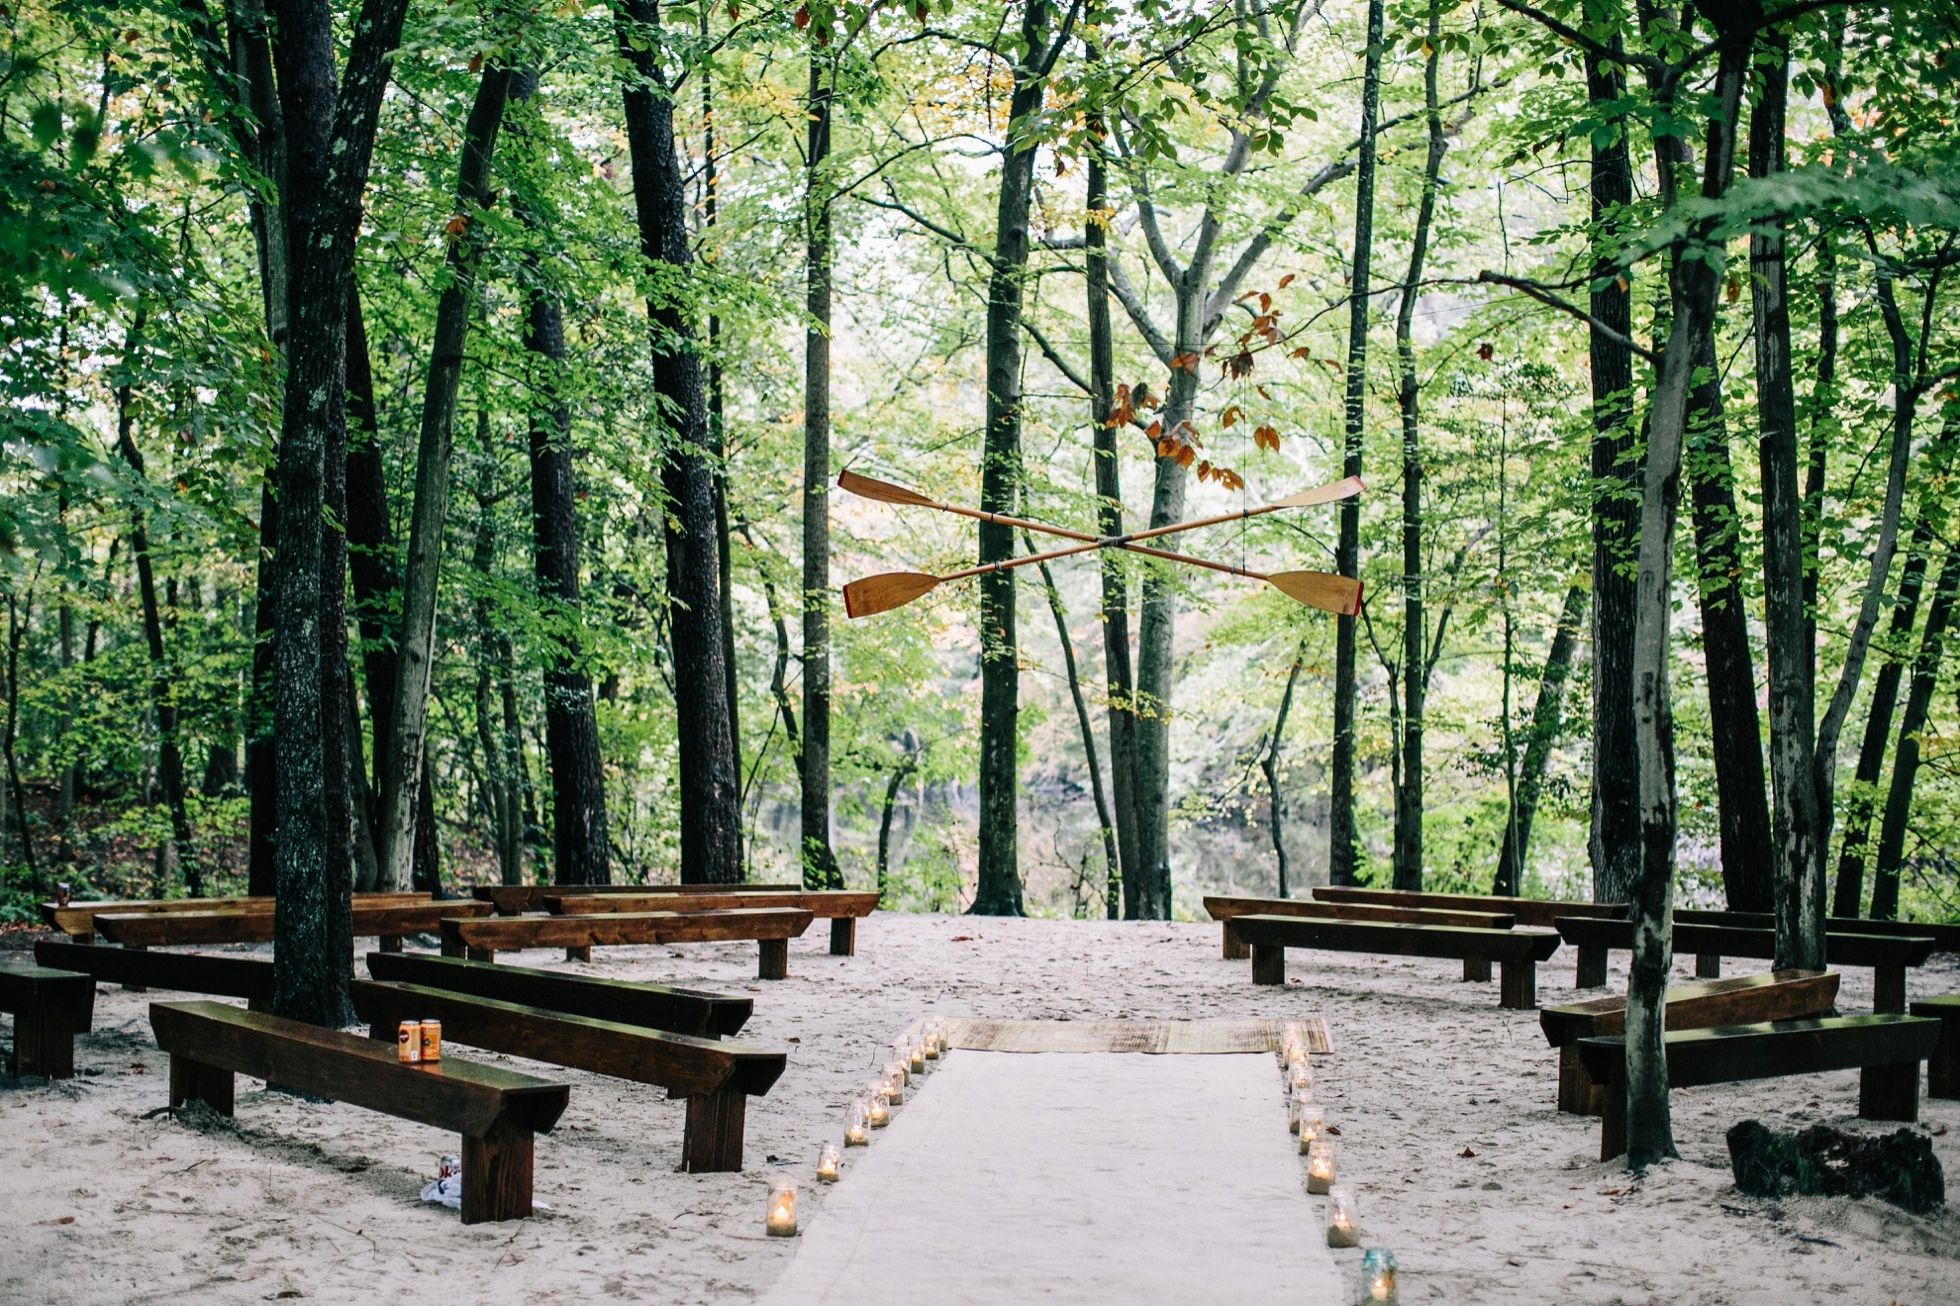 Best Unique PA NY NJ Wedding Venues - Campground Scout Camp, Wes ...